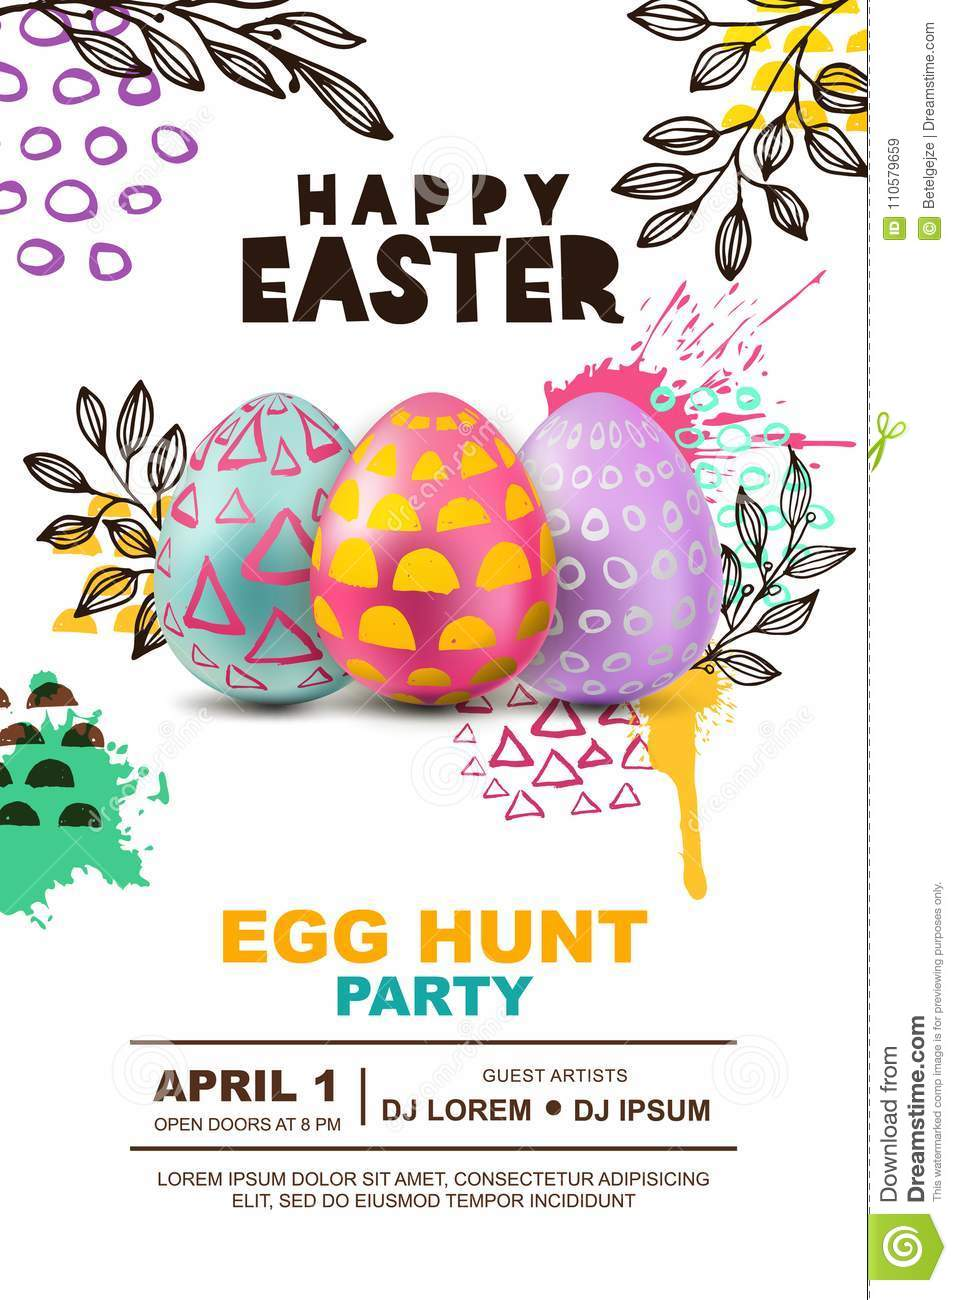 easter egg hunt party vector poster design template